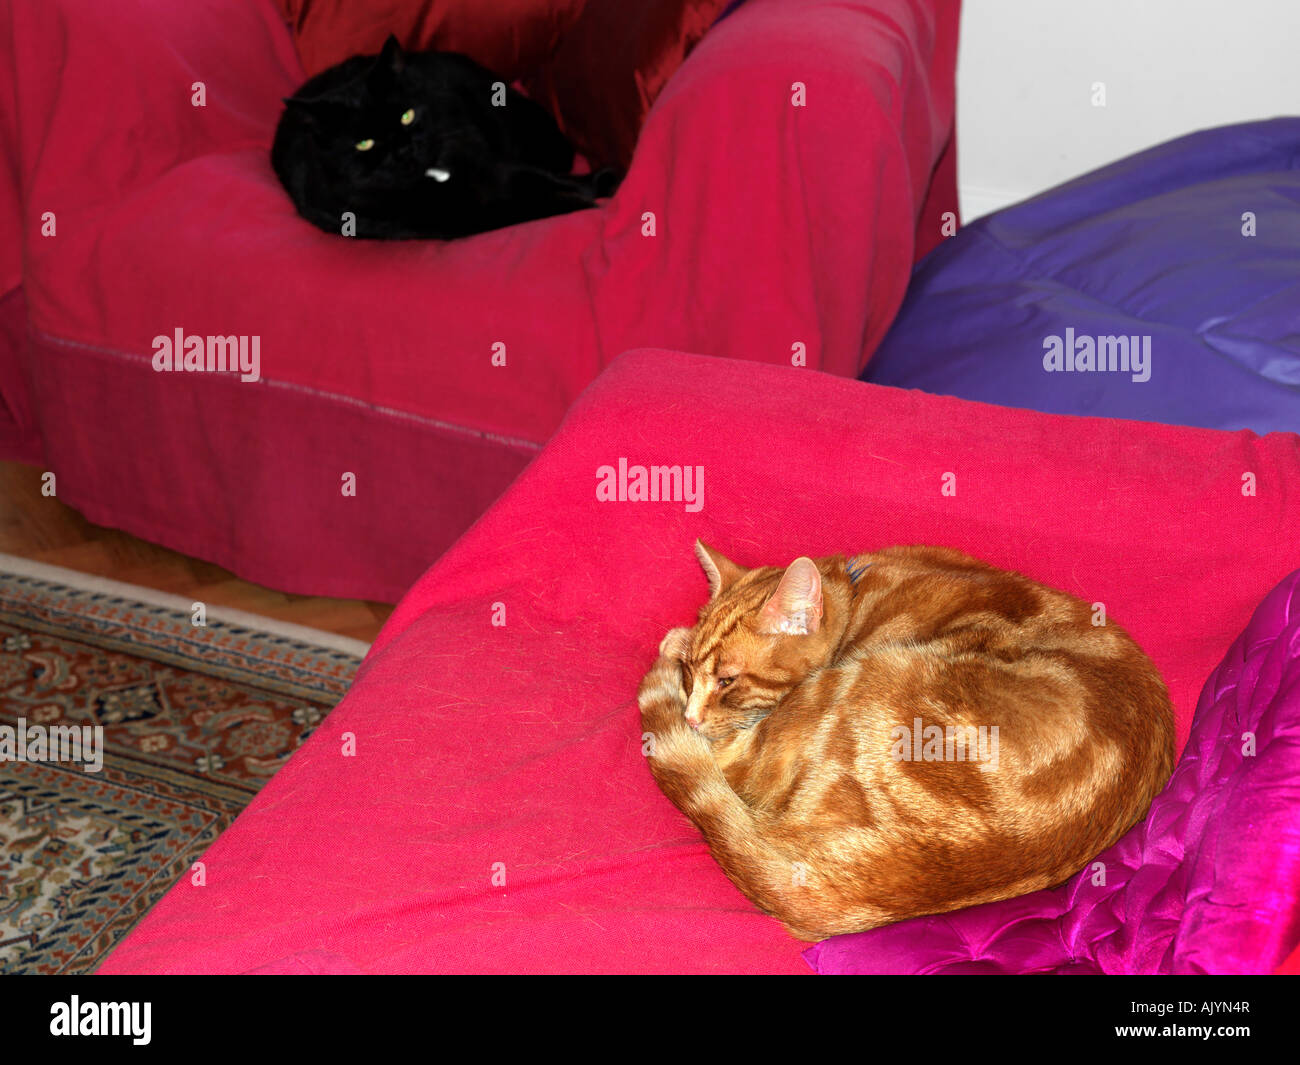 Two Cats Asleep on Different Chairs in the Lounge - Stock Image